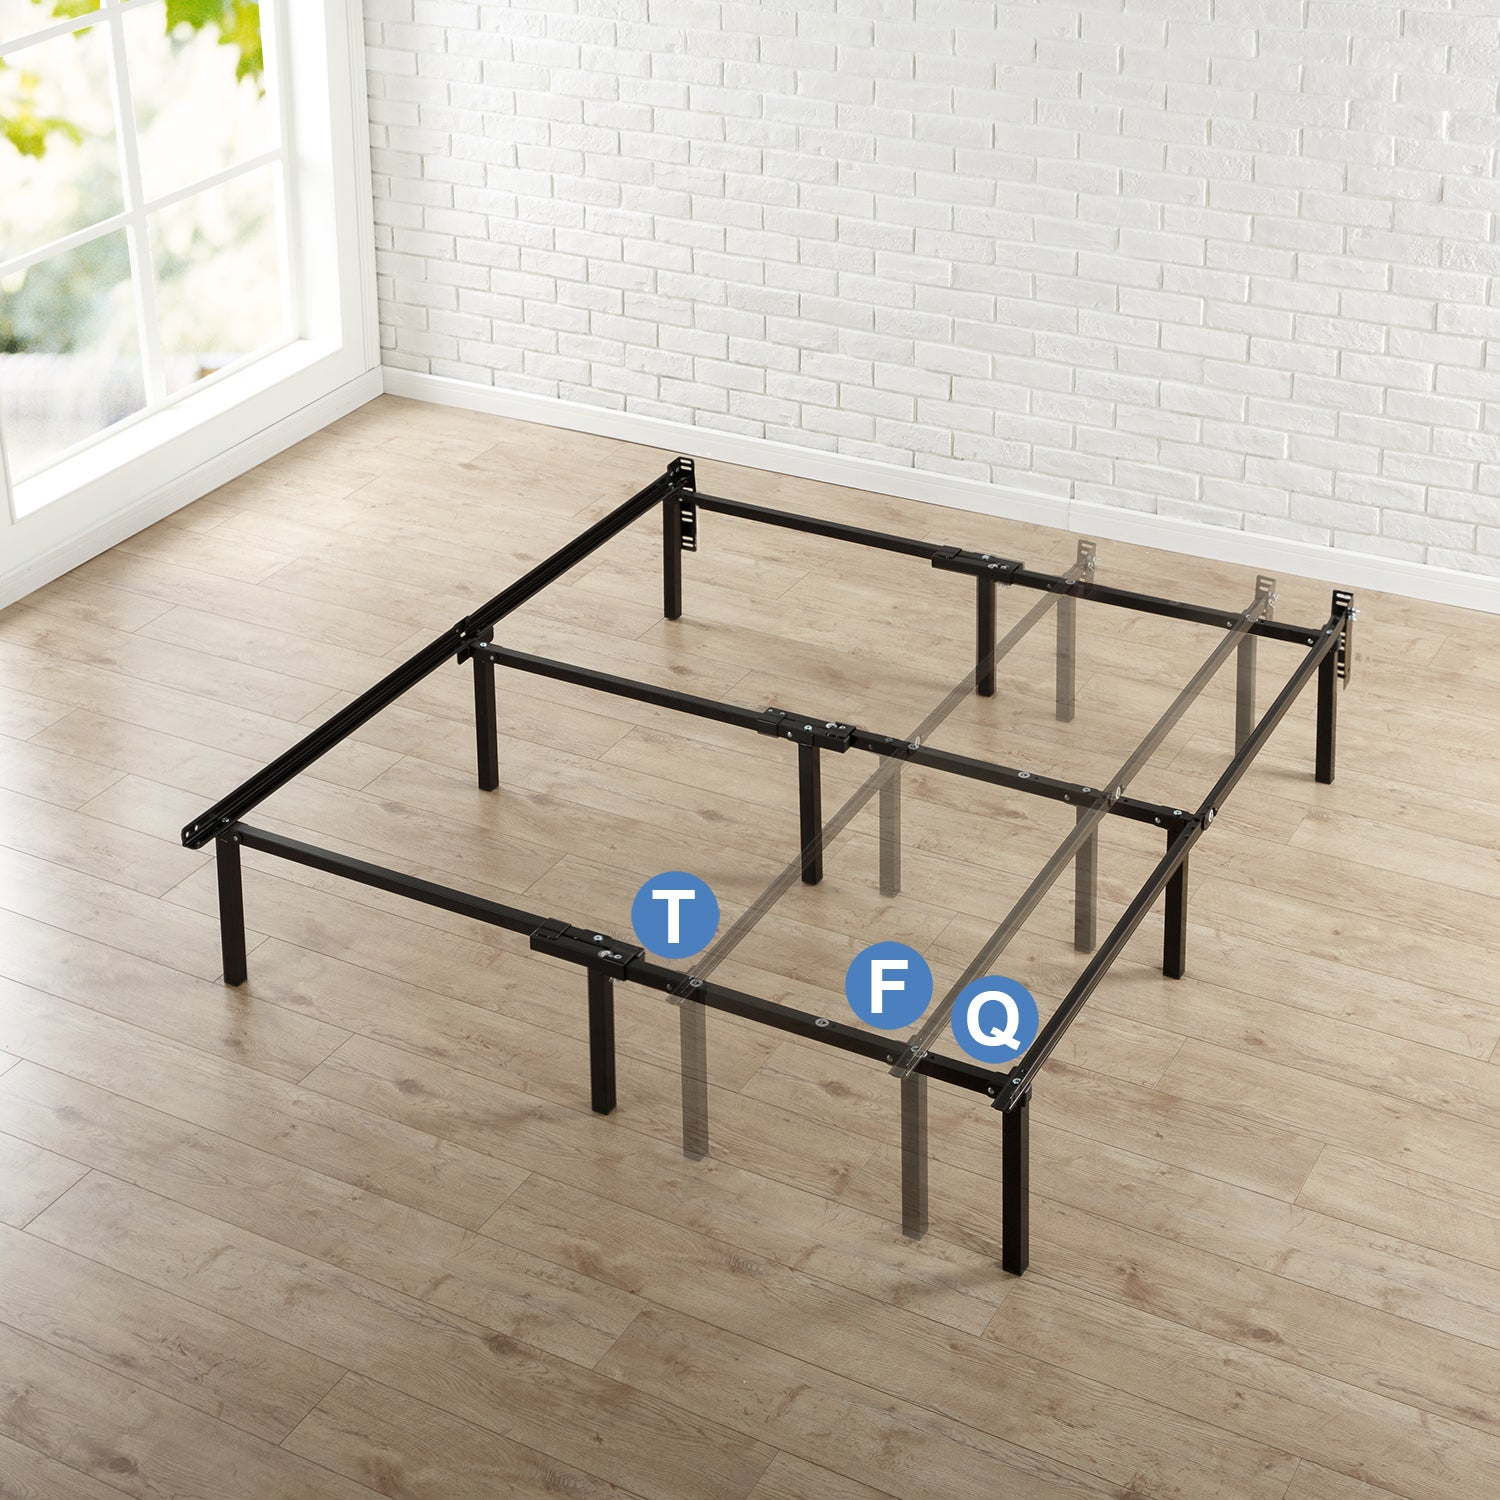 Priage 12-inch Compack Adjustable Bed Frame (Twin, Full, ...